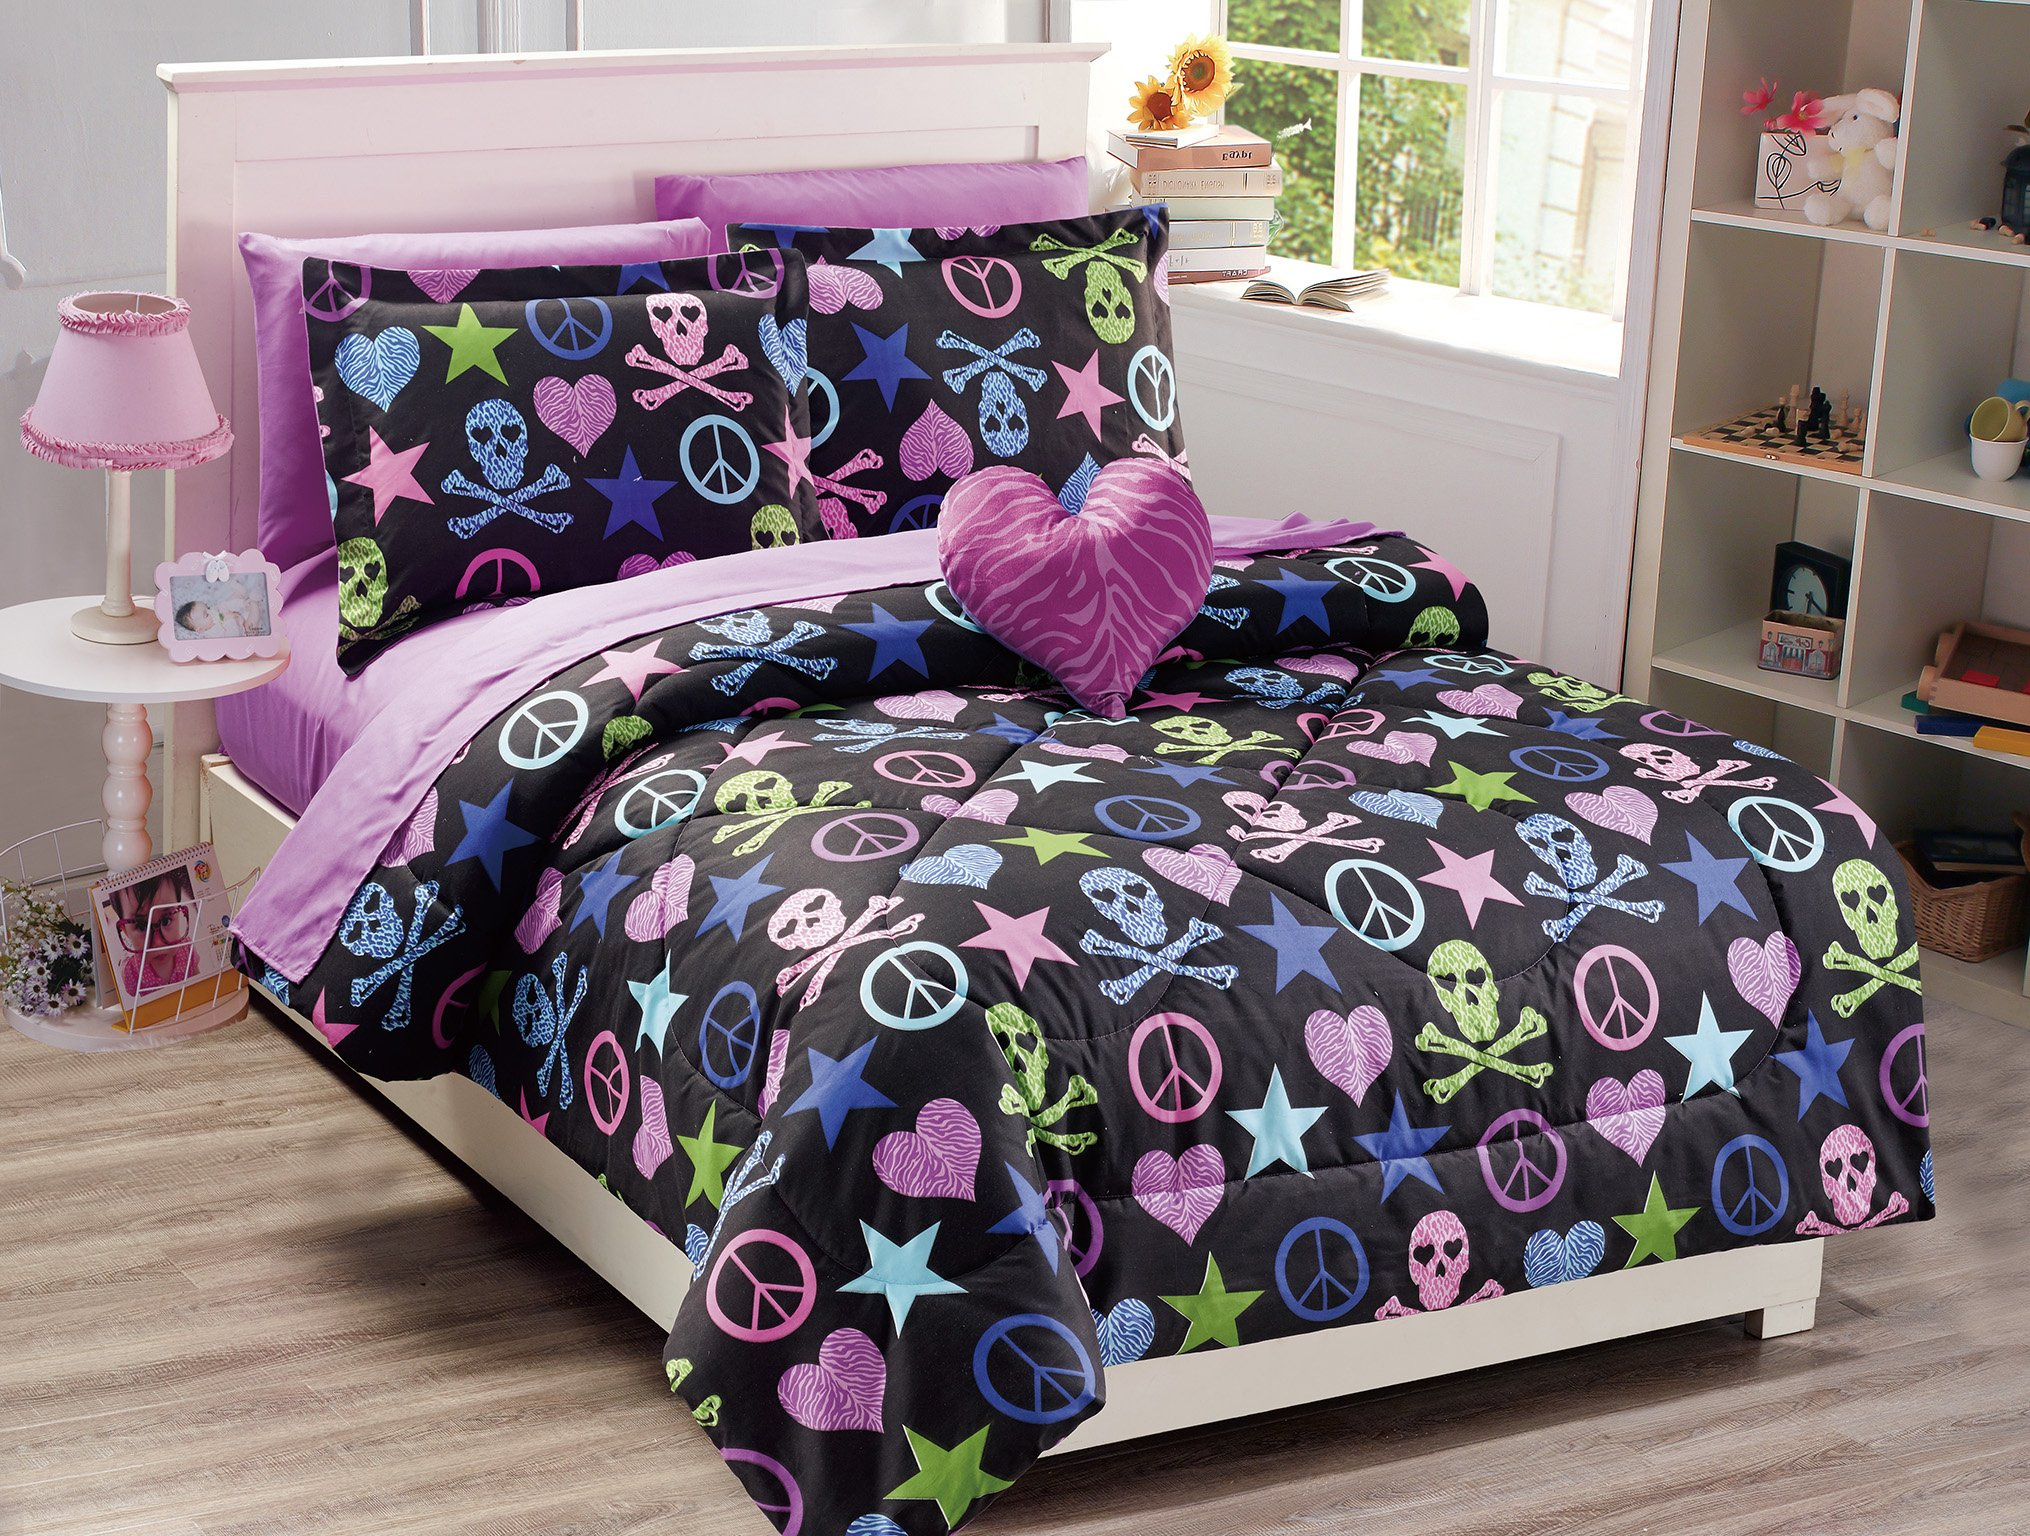 Mk Collection Kids/Teens 8 PC Full Size Peace Signs Hearts Skulls Zebra Print Stars Black Pink Blue Green Purple Comforter And Sheet Set With Furry Buddy Included New